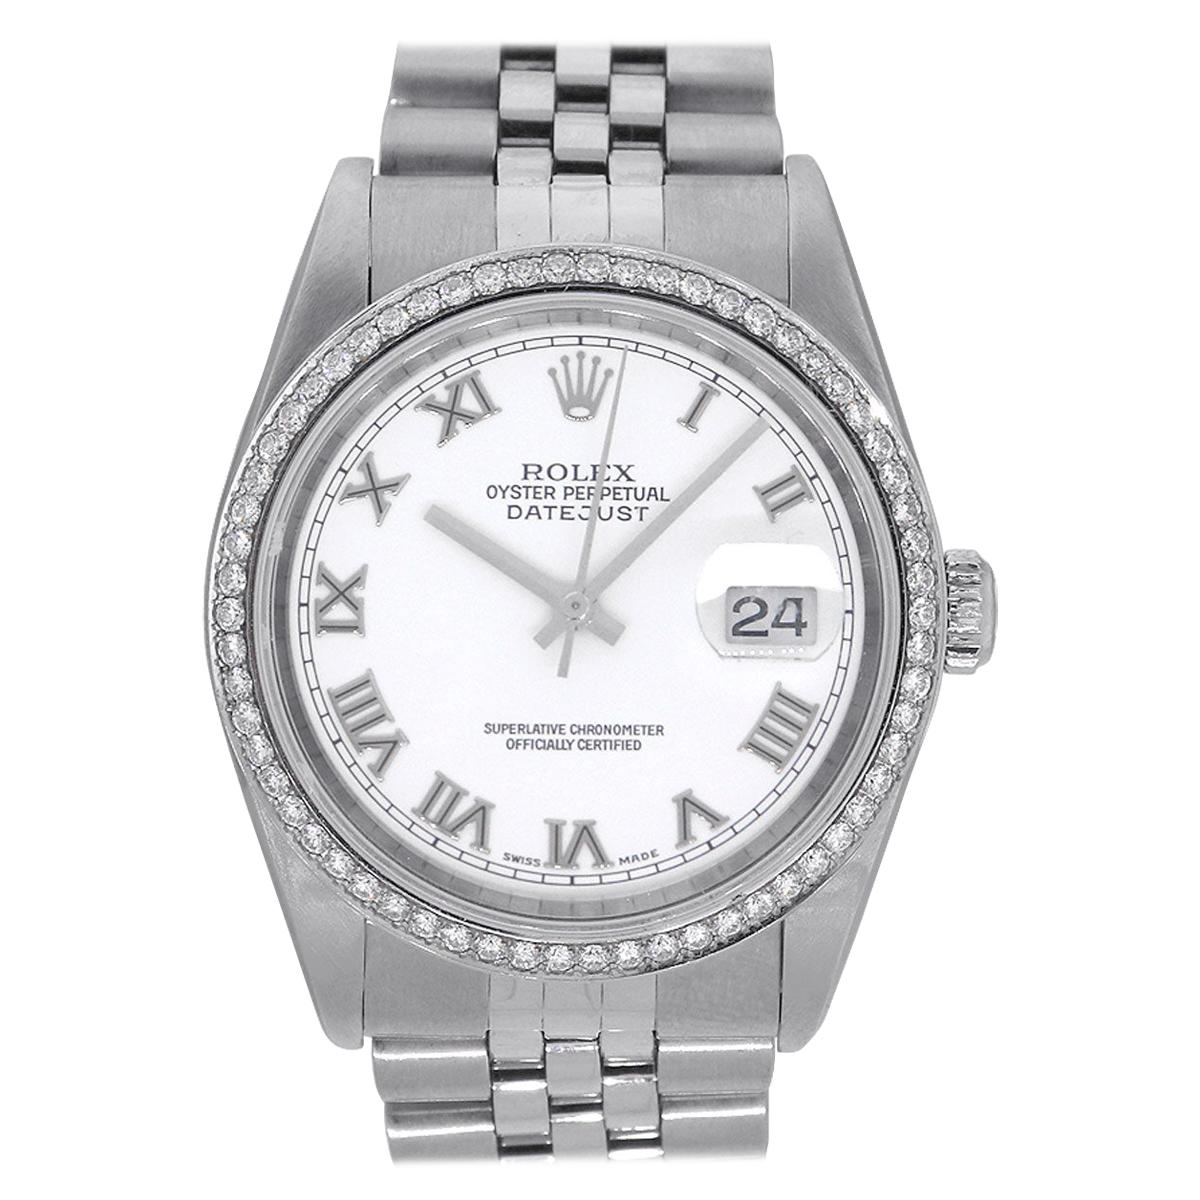 Rolex 16234 Datejust Stainless Steel White Roman Dial Watch